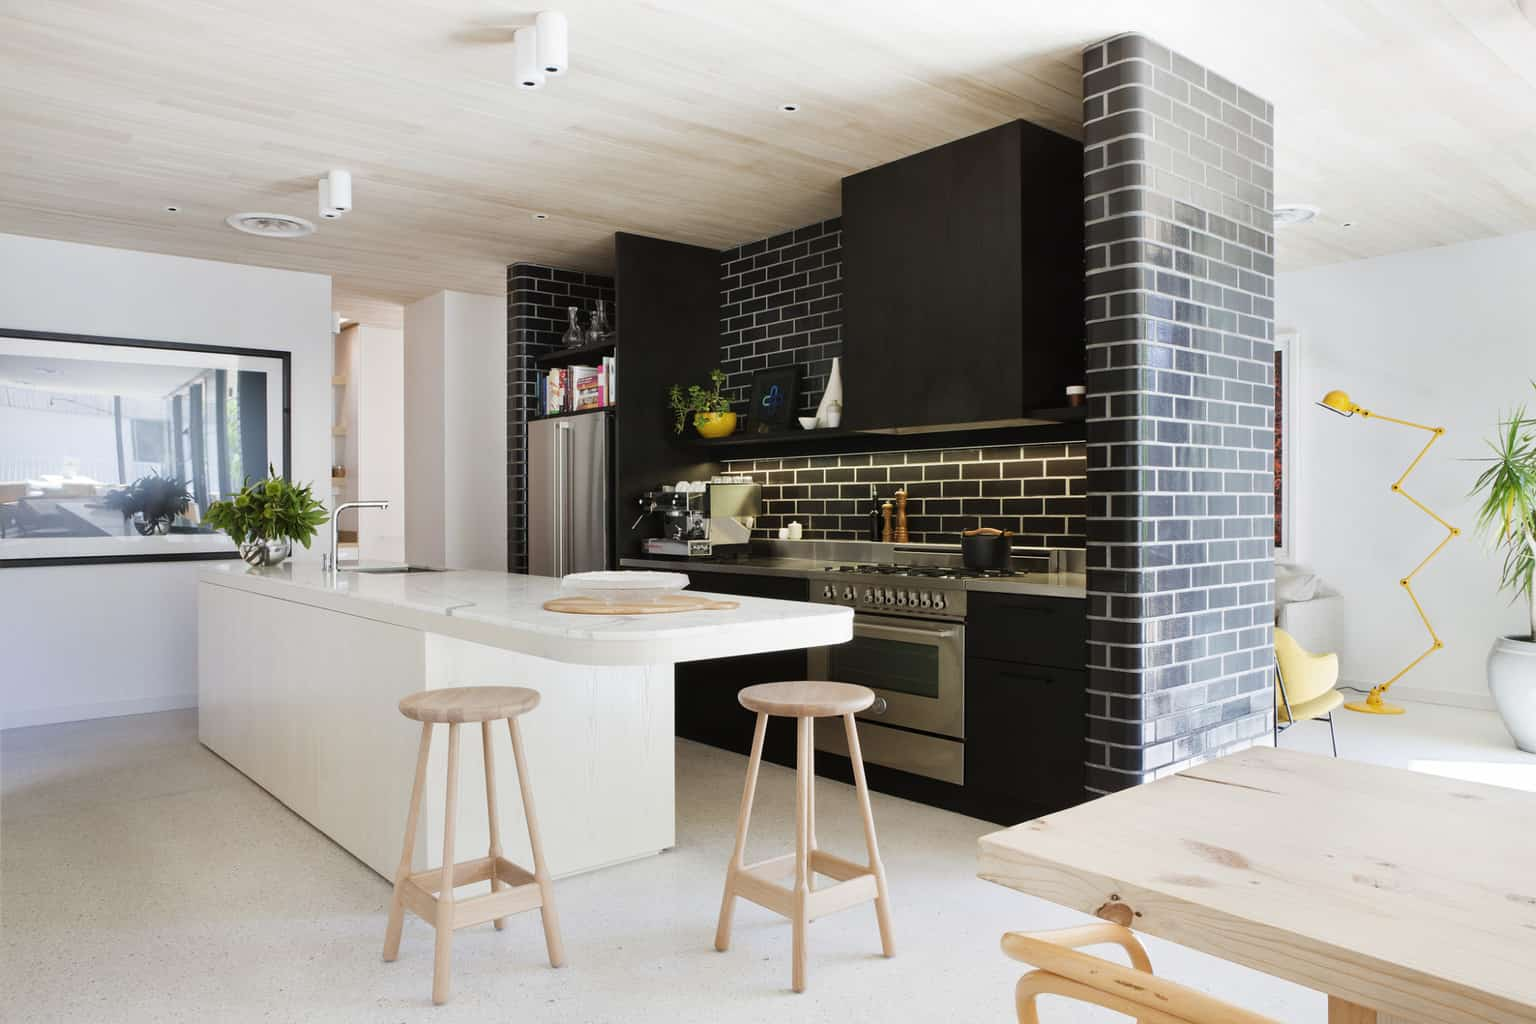 2012 Houses Awards: Brick house